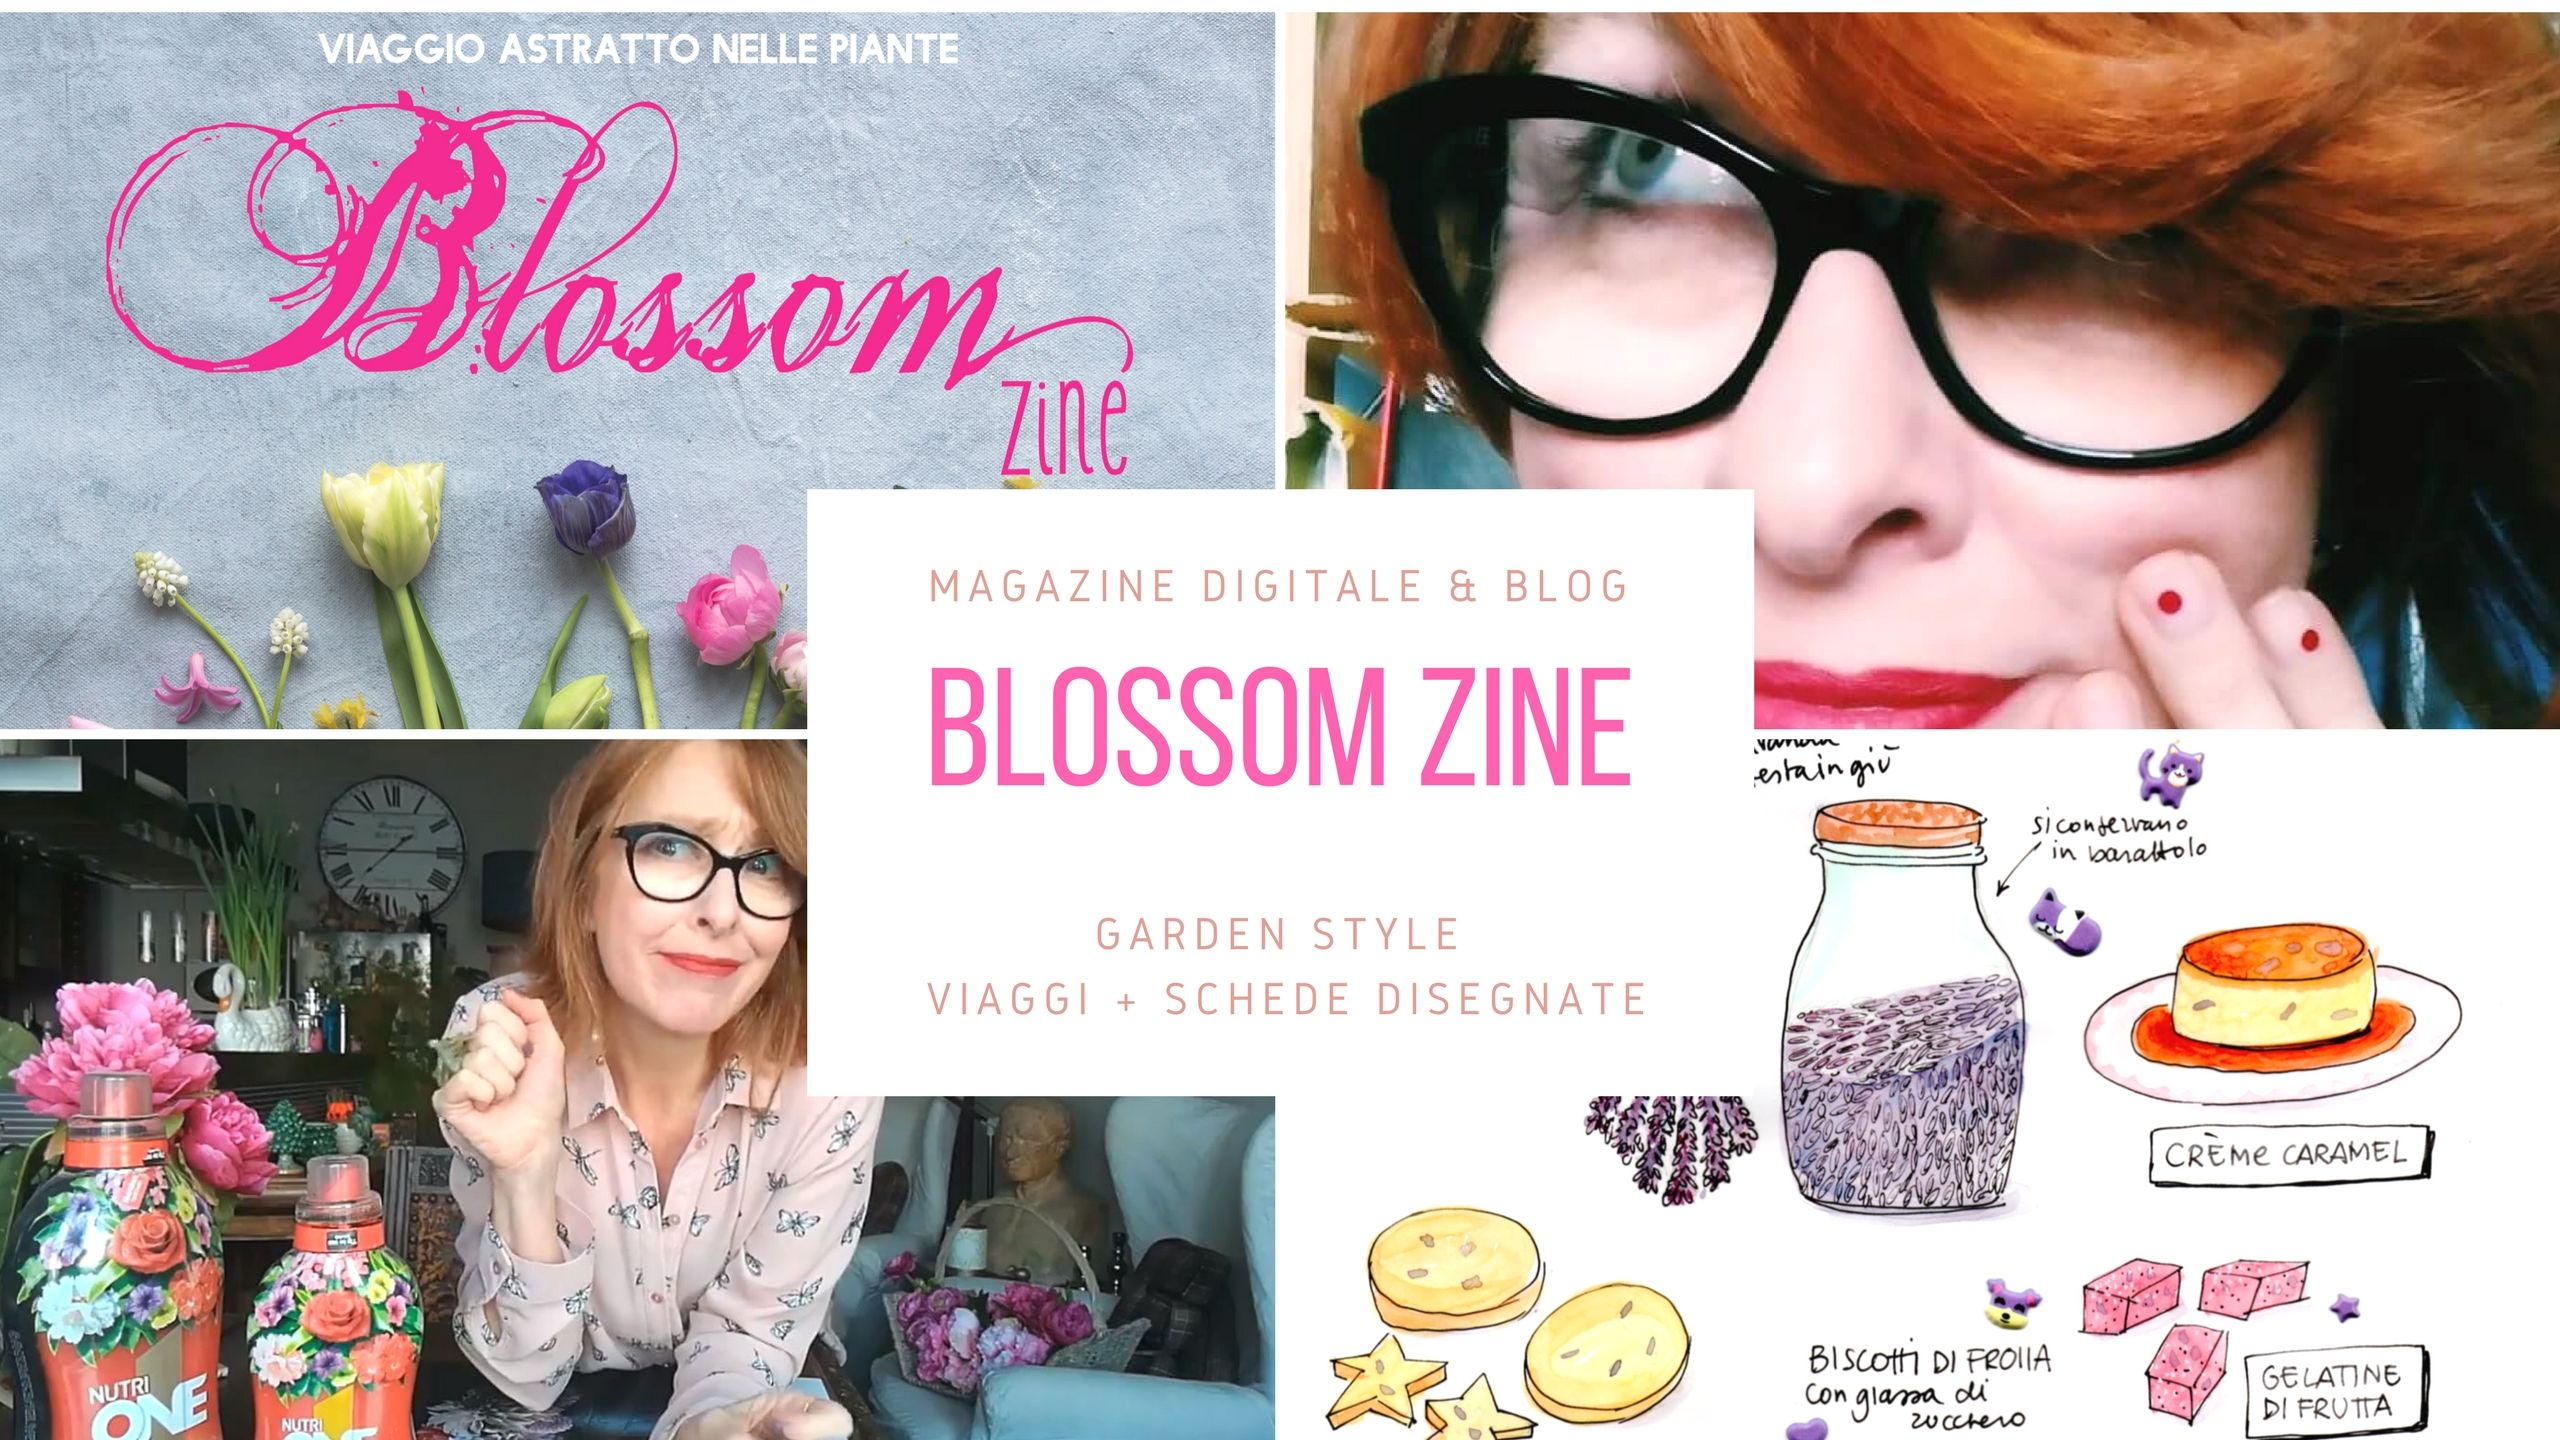 blossom zine youtube channel